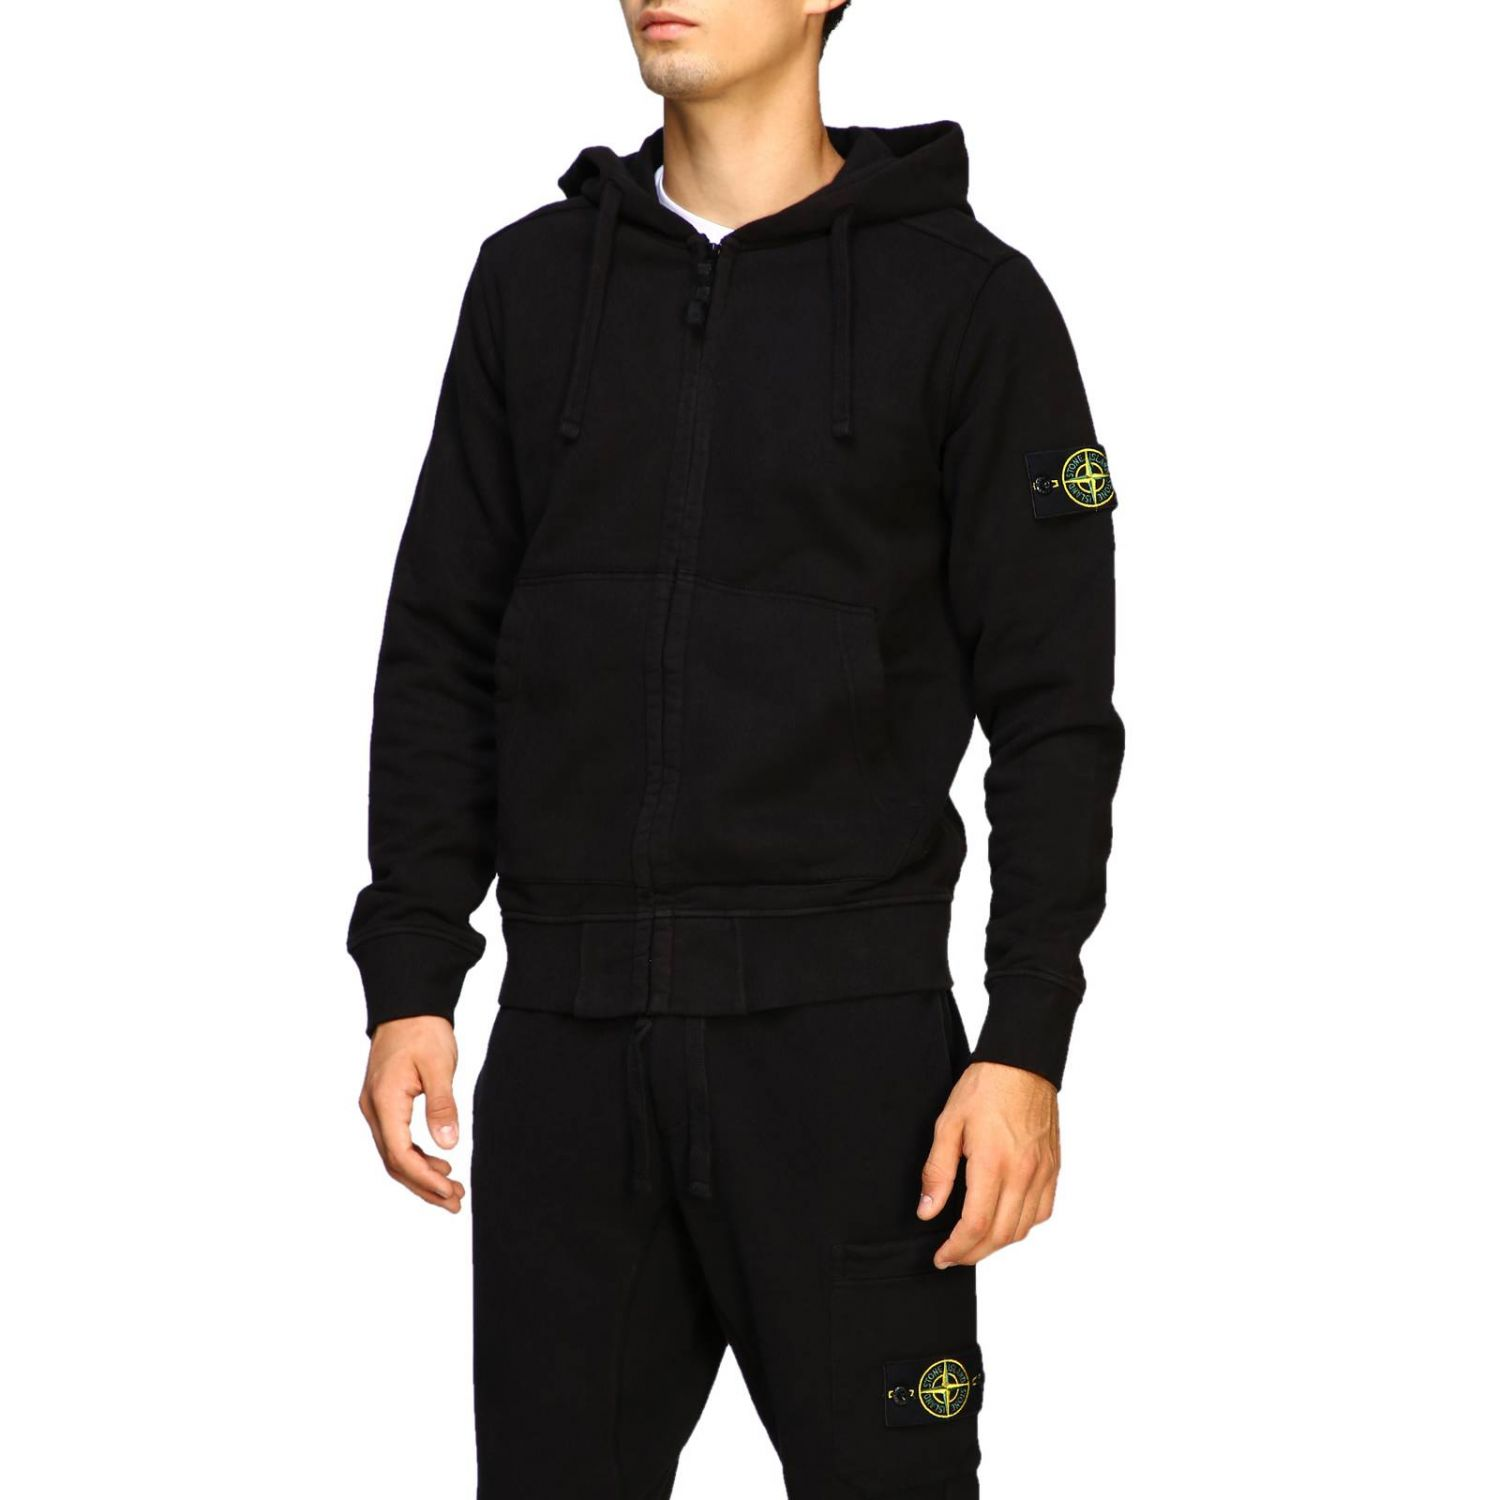 Sweater men Stone Island black 4